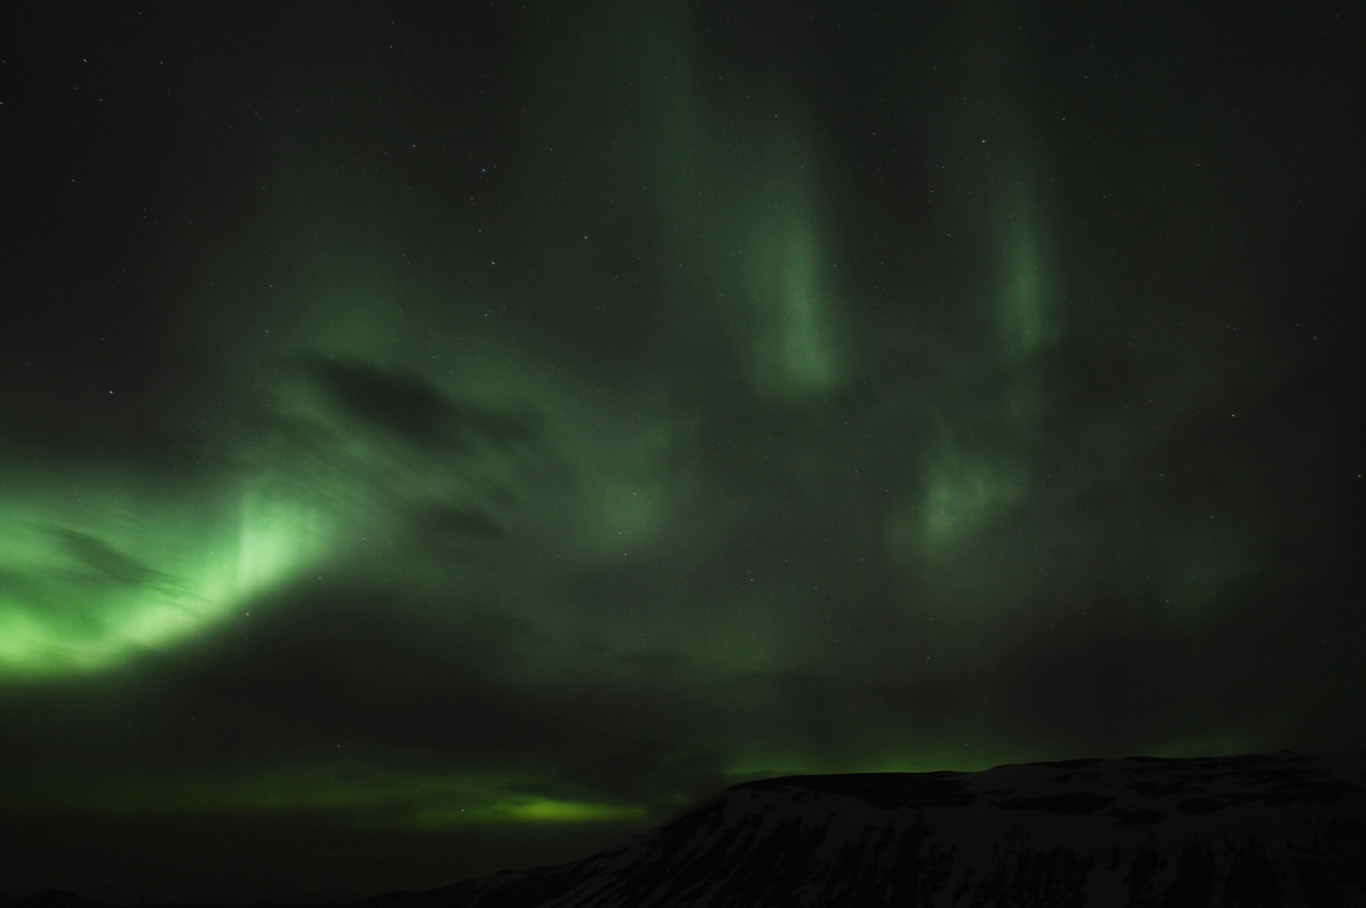 Chasing The Northern Lights Aurora Borealis In Iceland